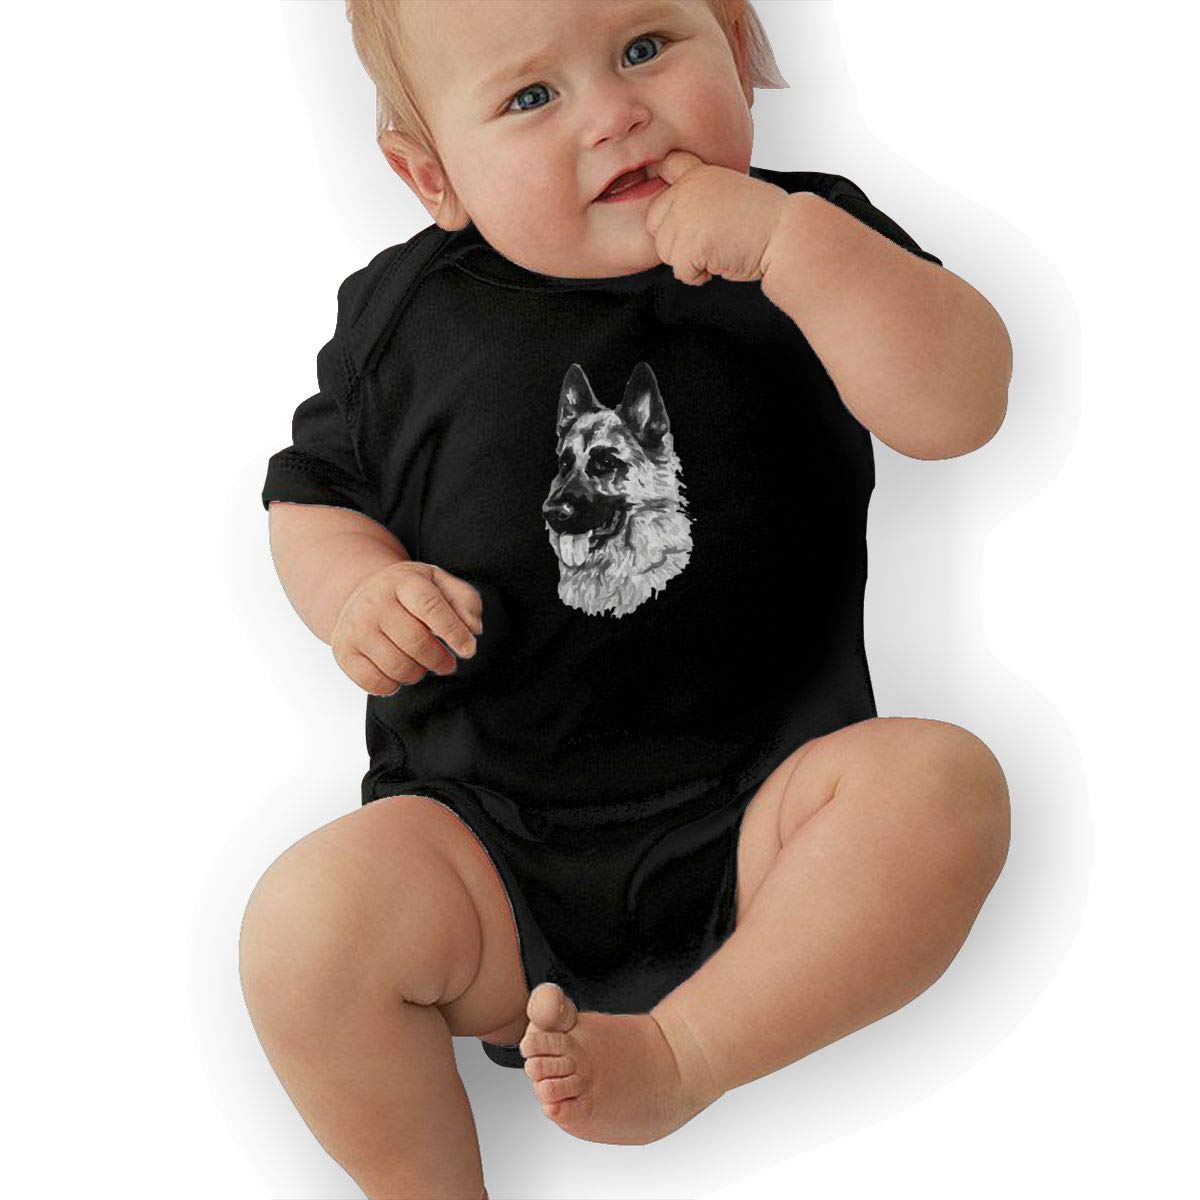 HappyLifea German Shepherd Dog Baby Pajamas Bodysuits Clothes Onesies Jumpsuits Outfits Black